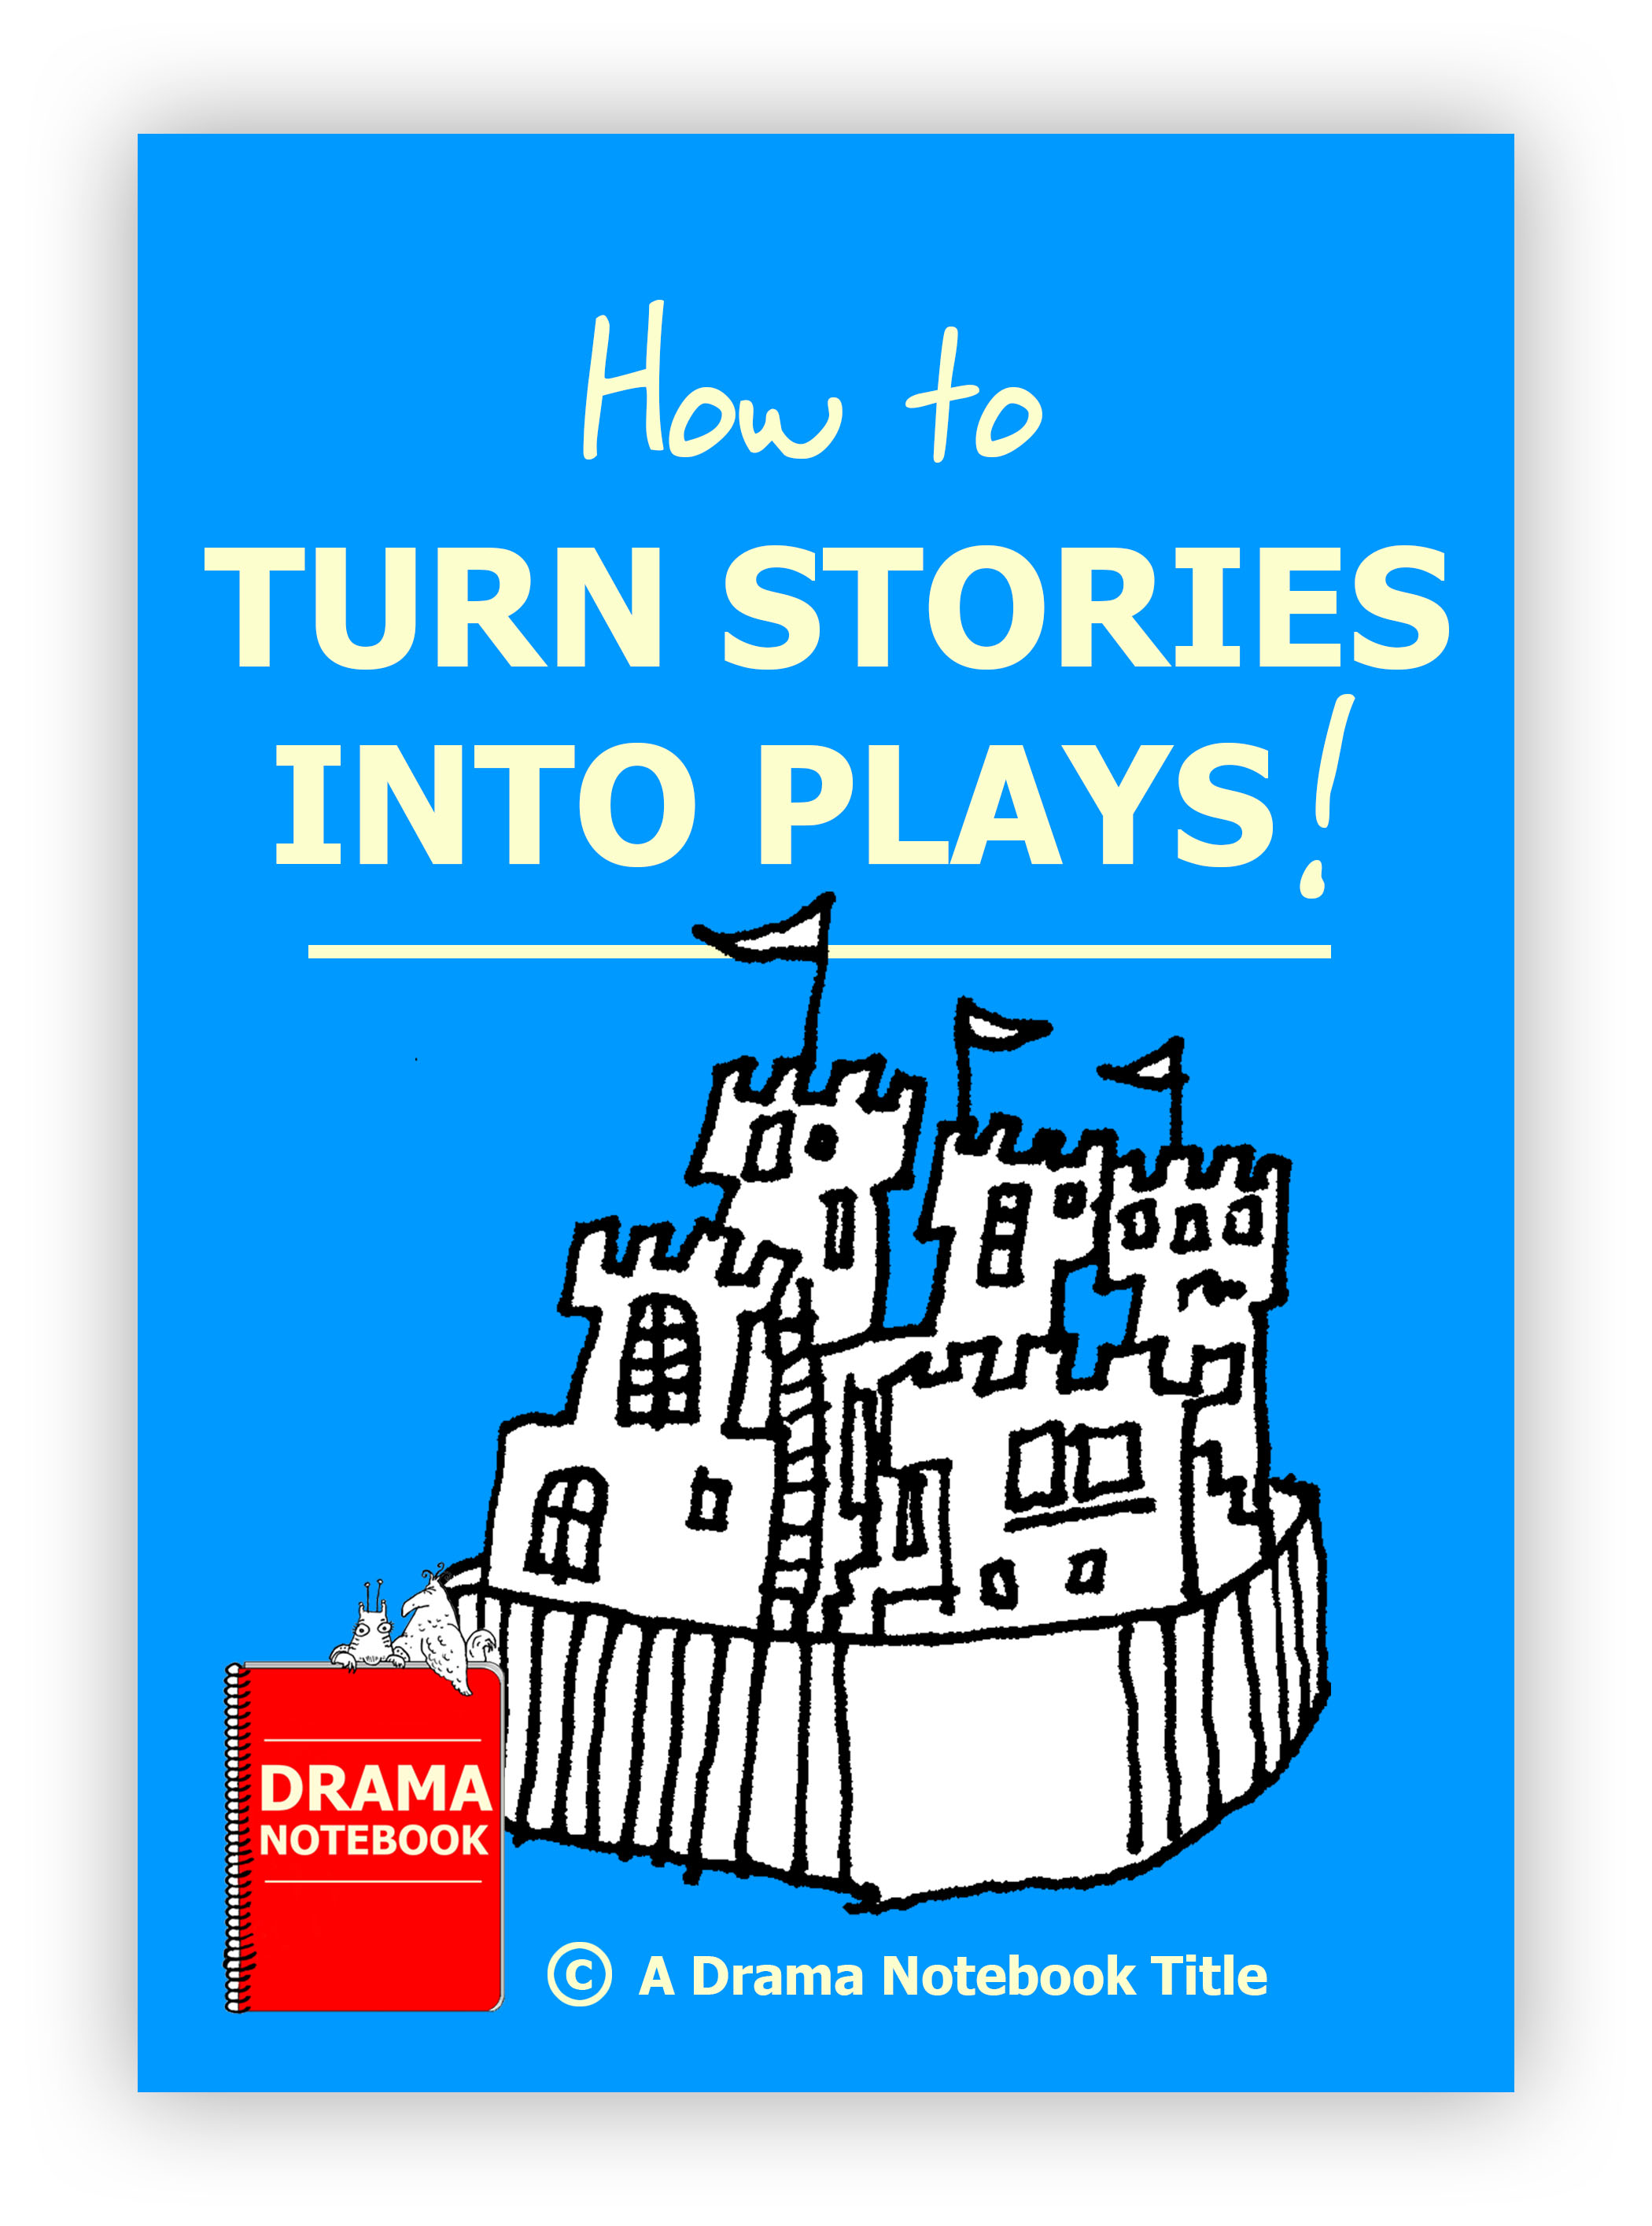 How to Turn Stories into Plays